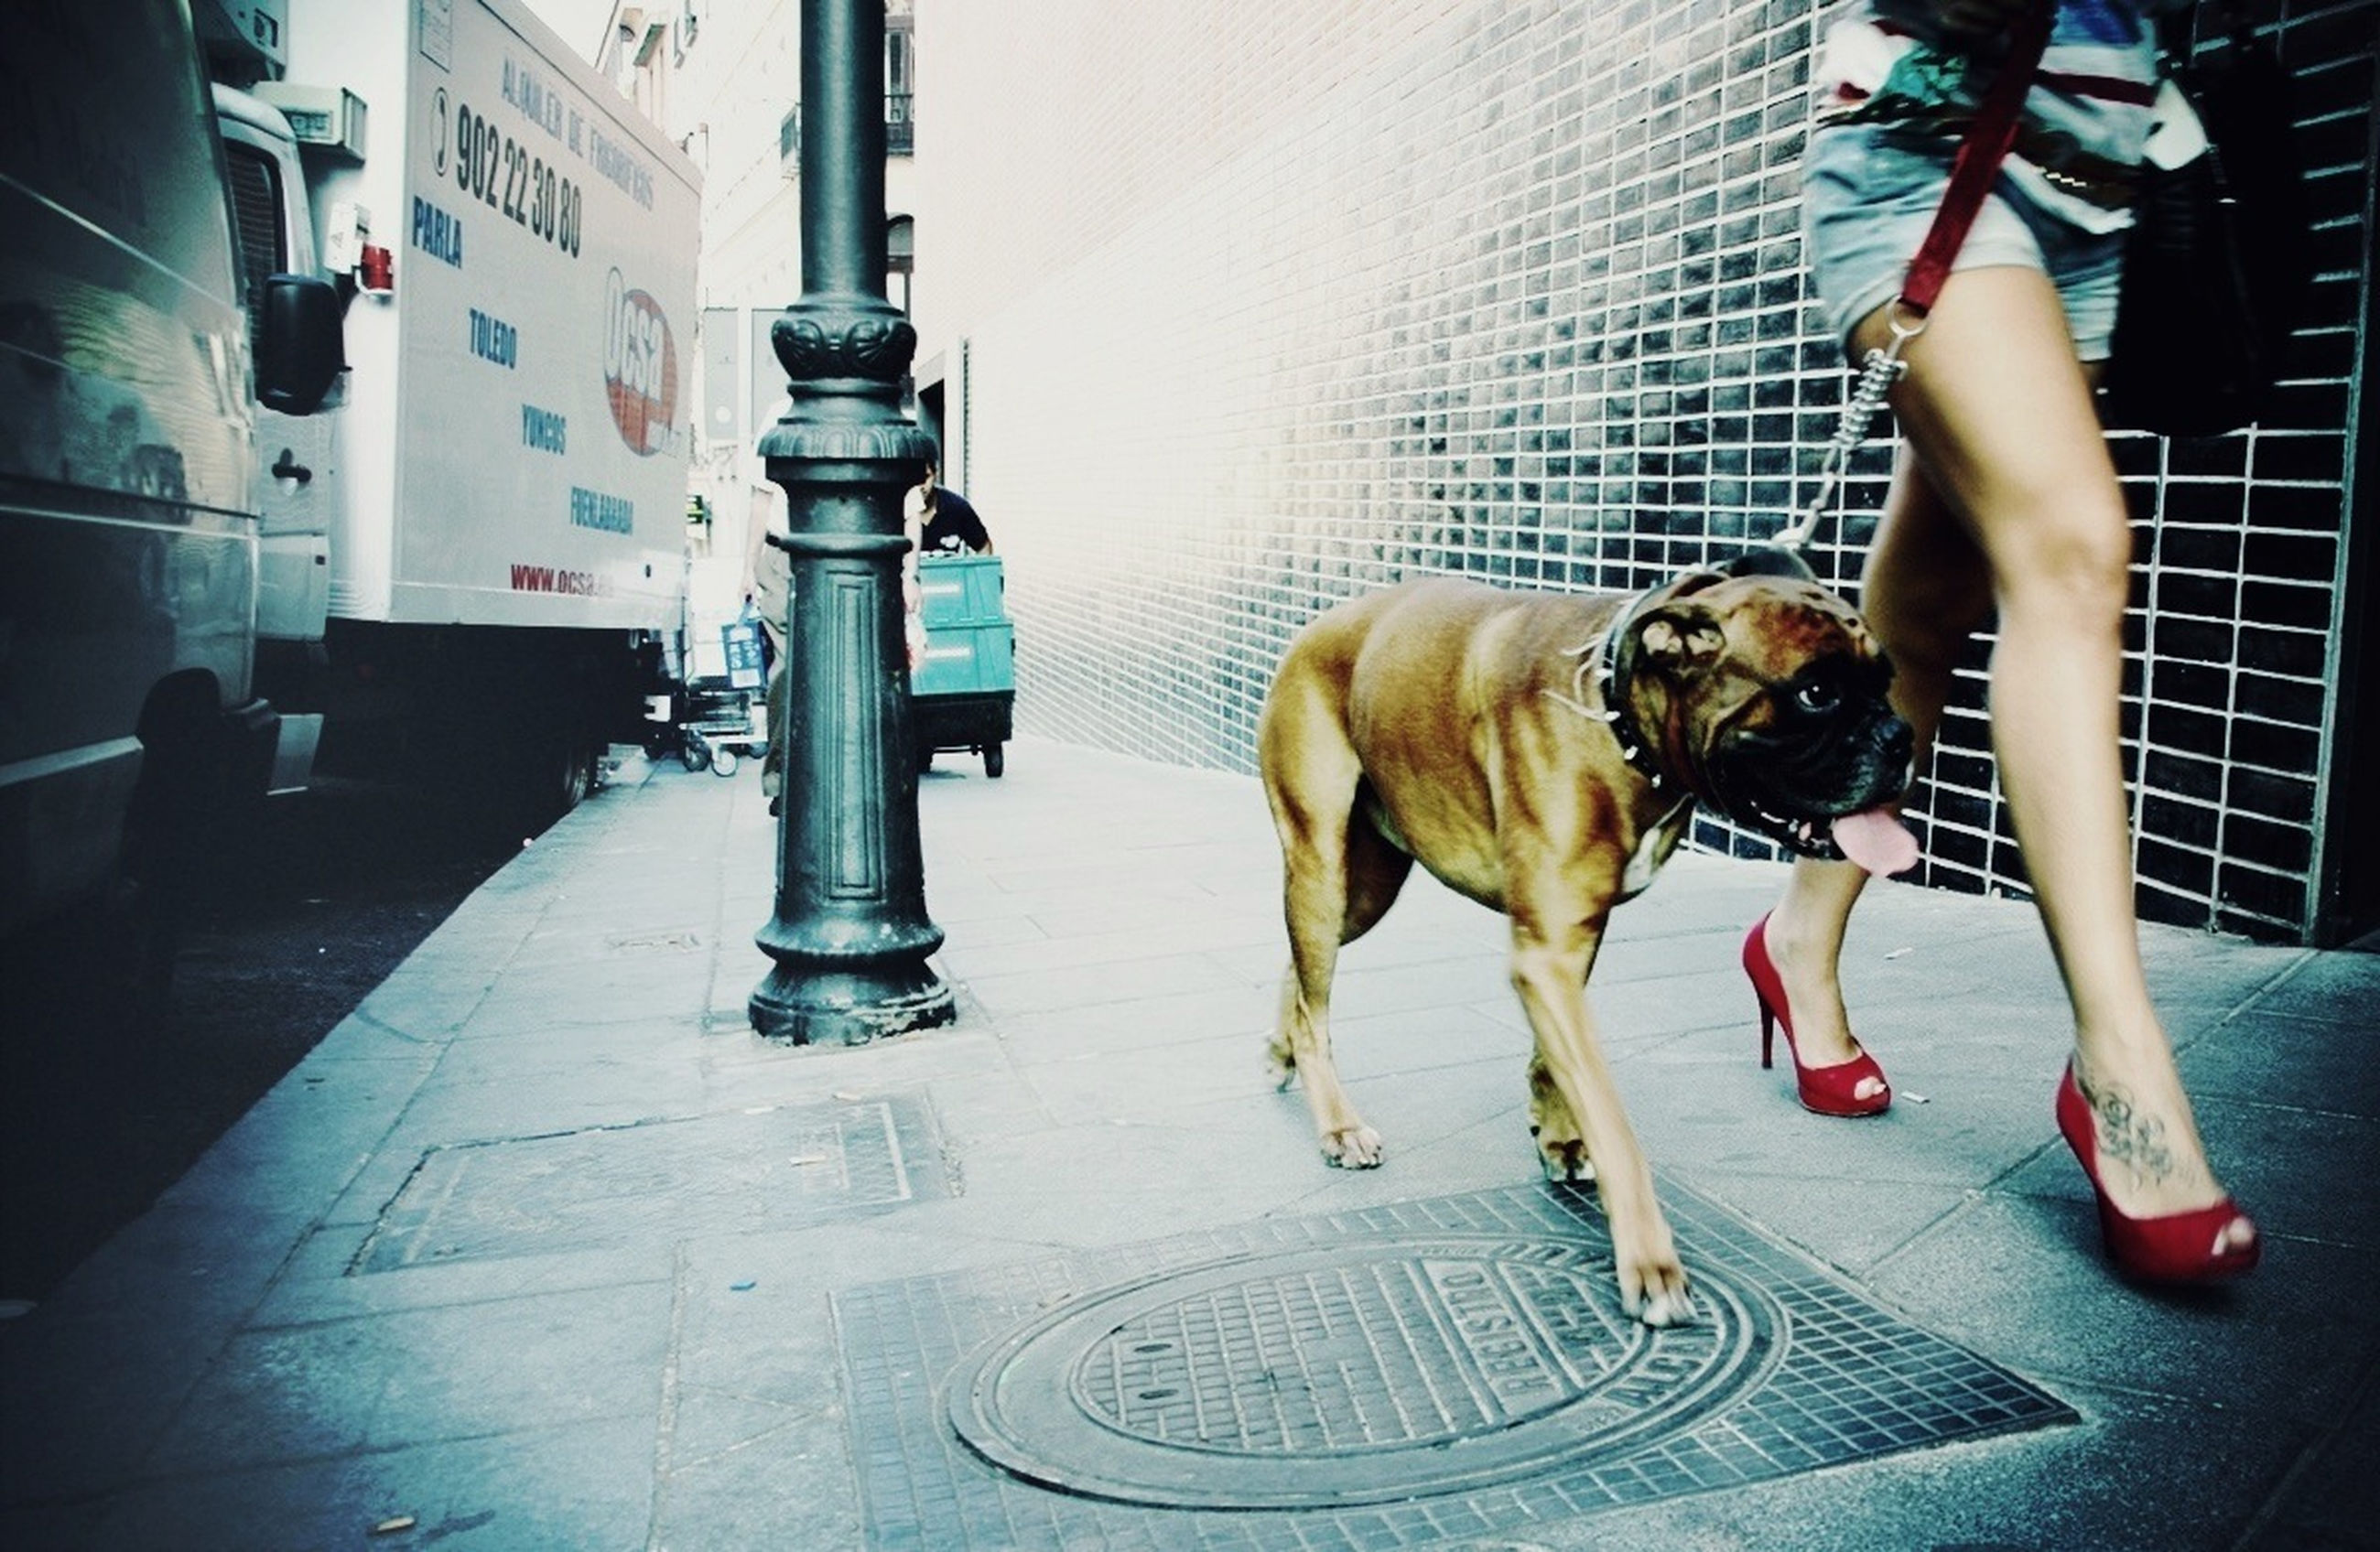 domestic animals, pets, dog, one animal, mammal, animal themes, full length, pet leash, street, pet collar, indoors, walking, standing, transportation, men, day, architecture, built structure